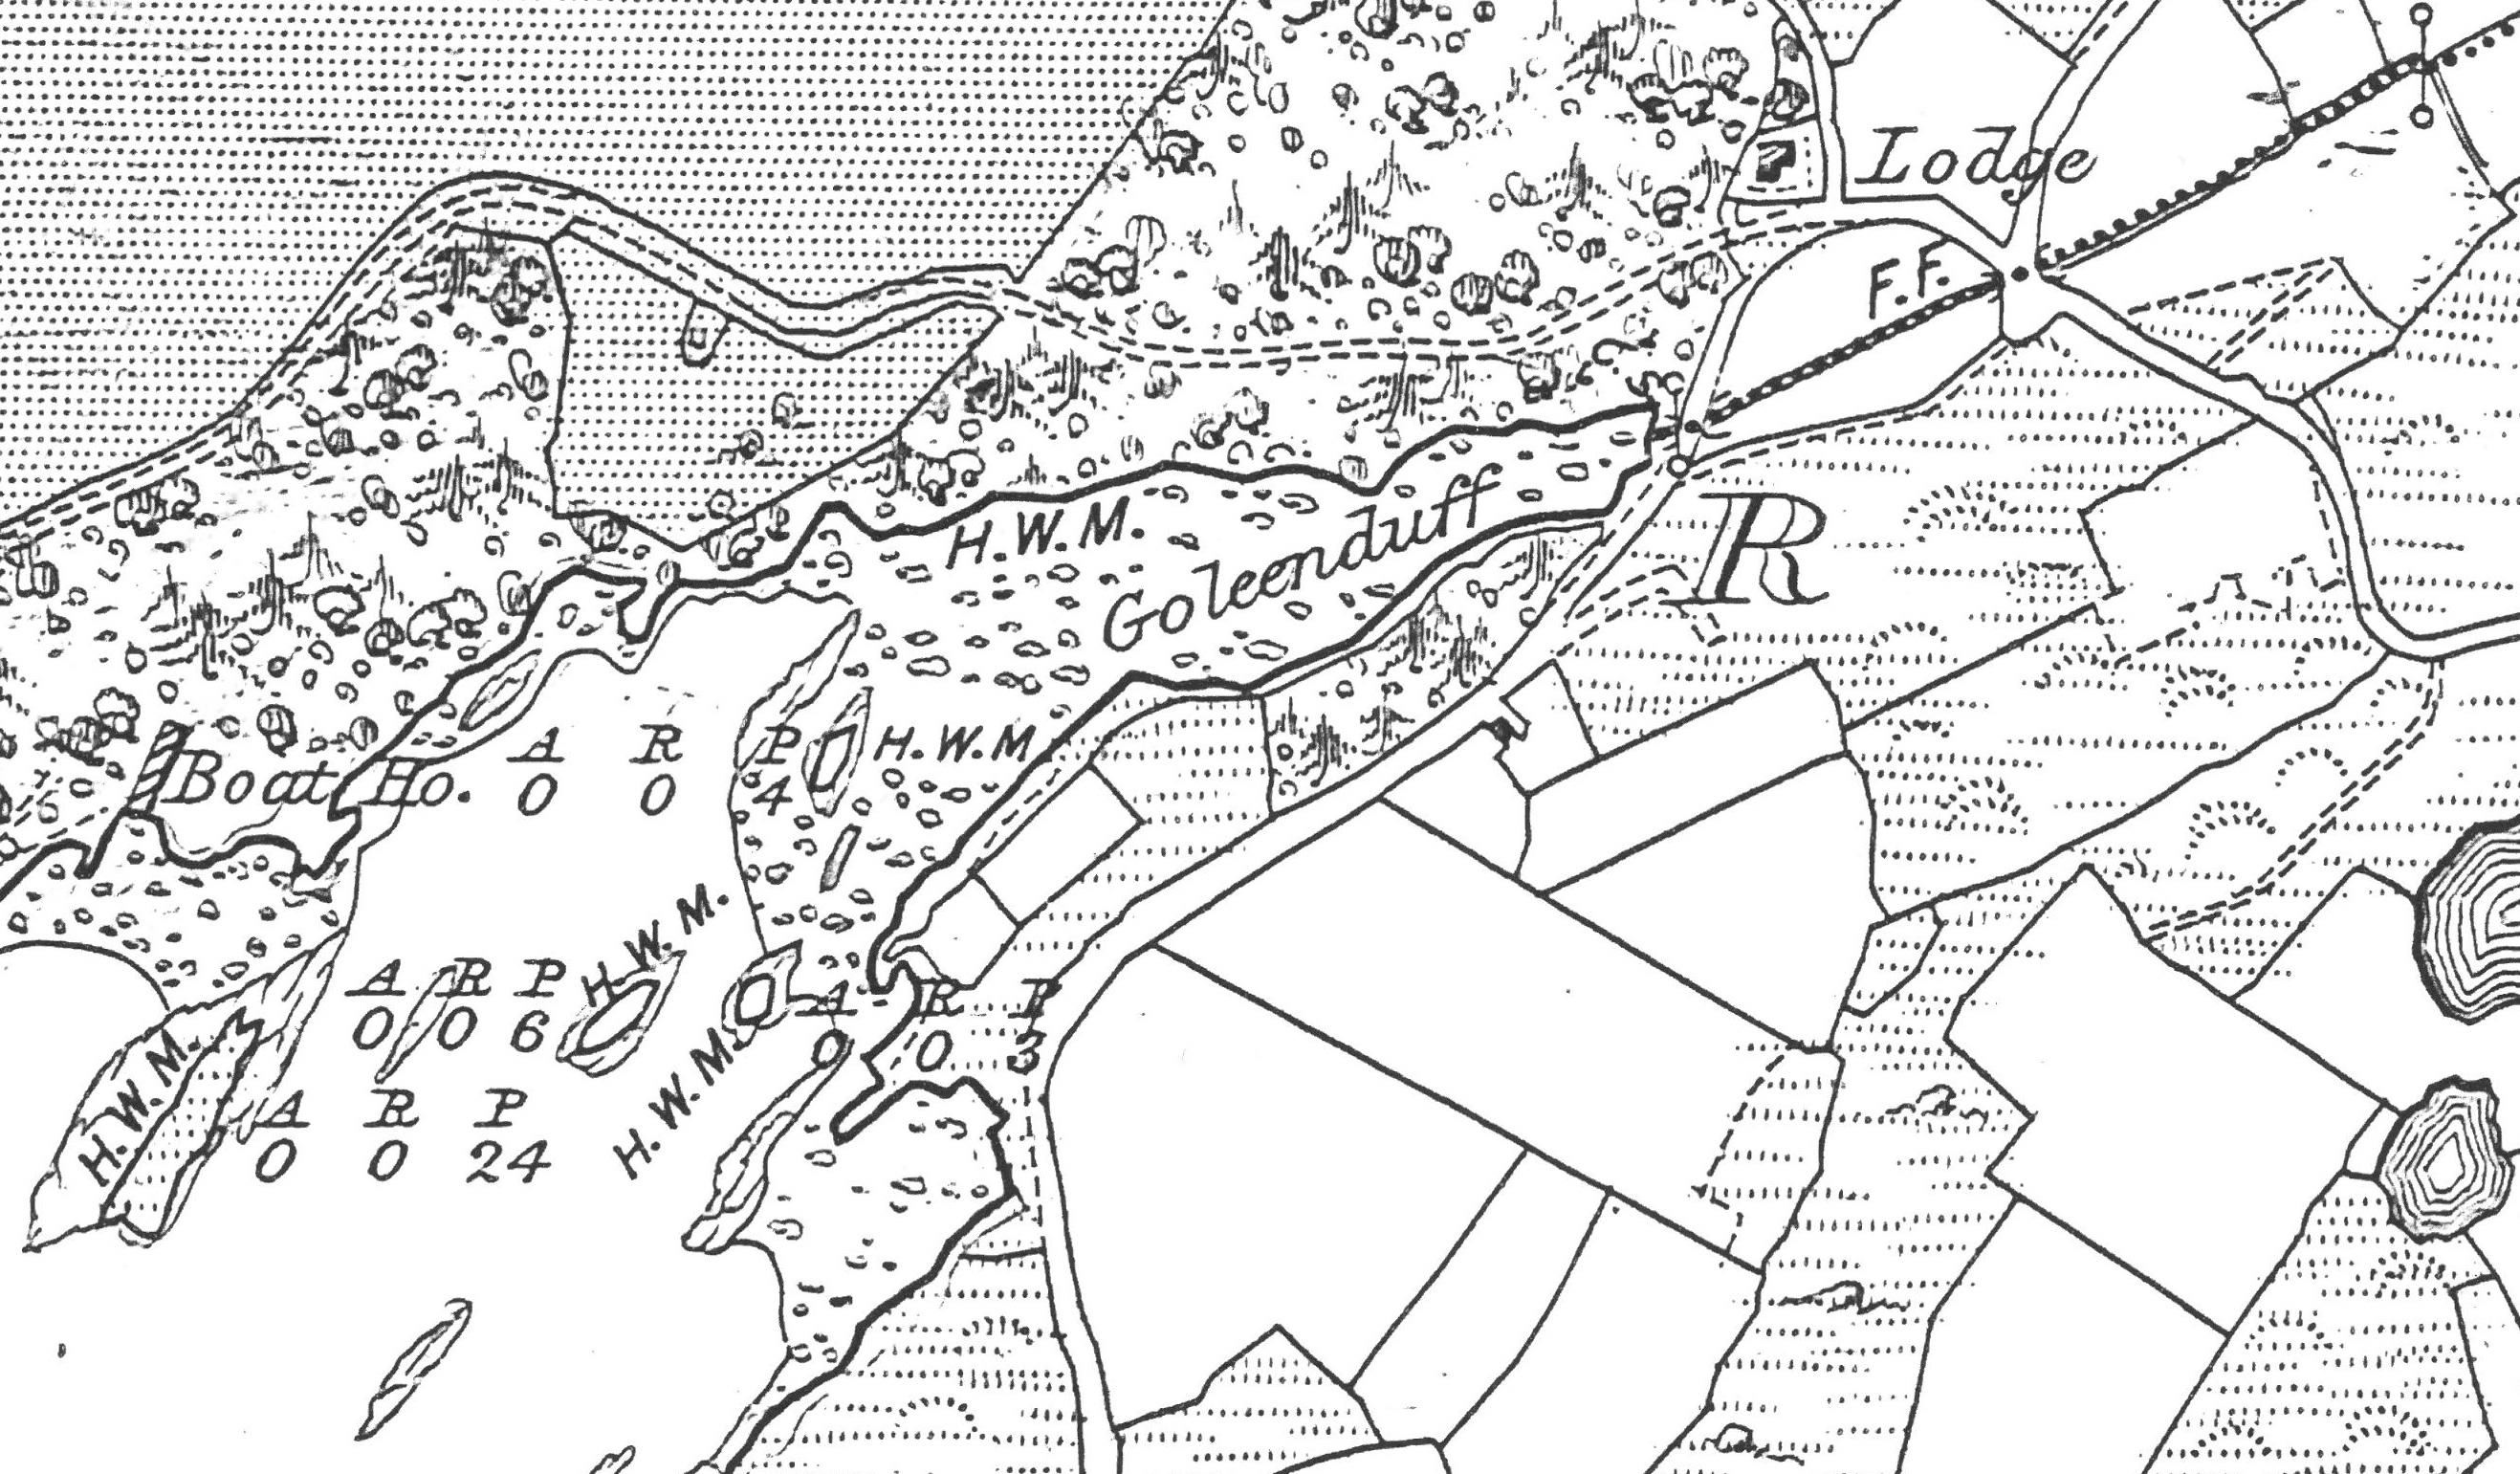 "Excerpt from Sheet 100 of OS Second Edition 6"" Map Surveyed 1895-96 showing the southern lodge and entrance to the demesne"